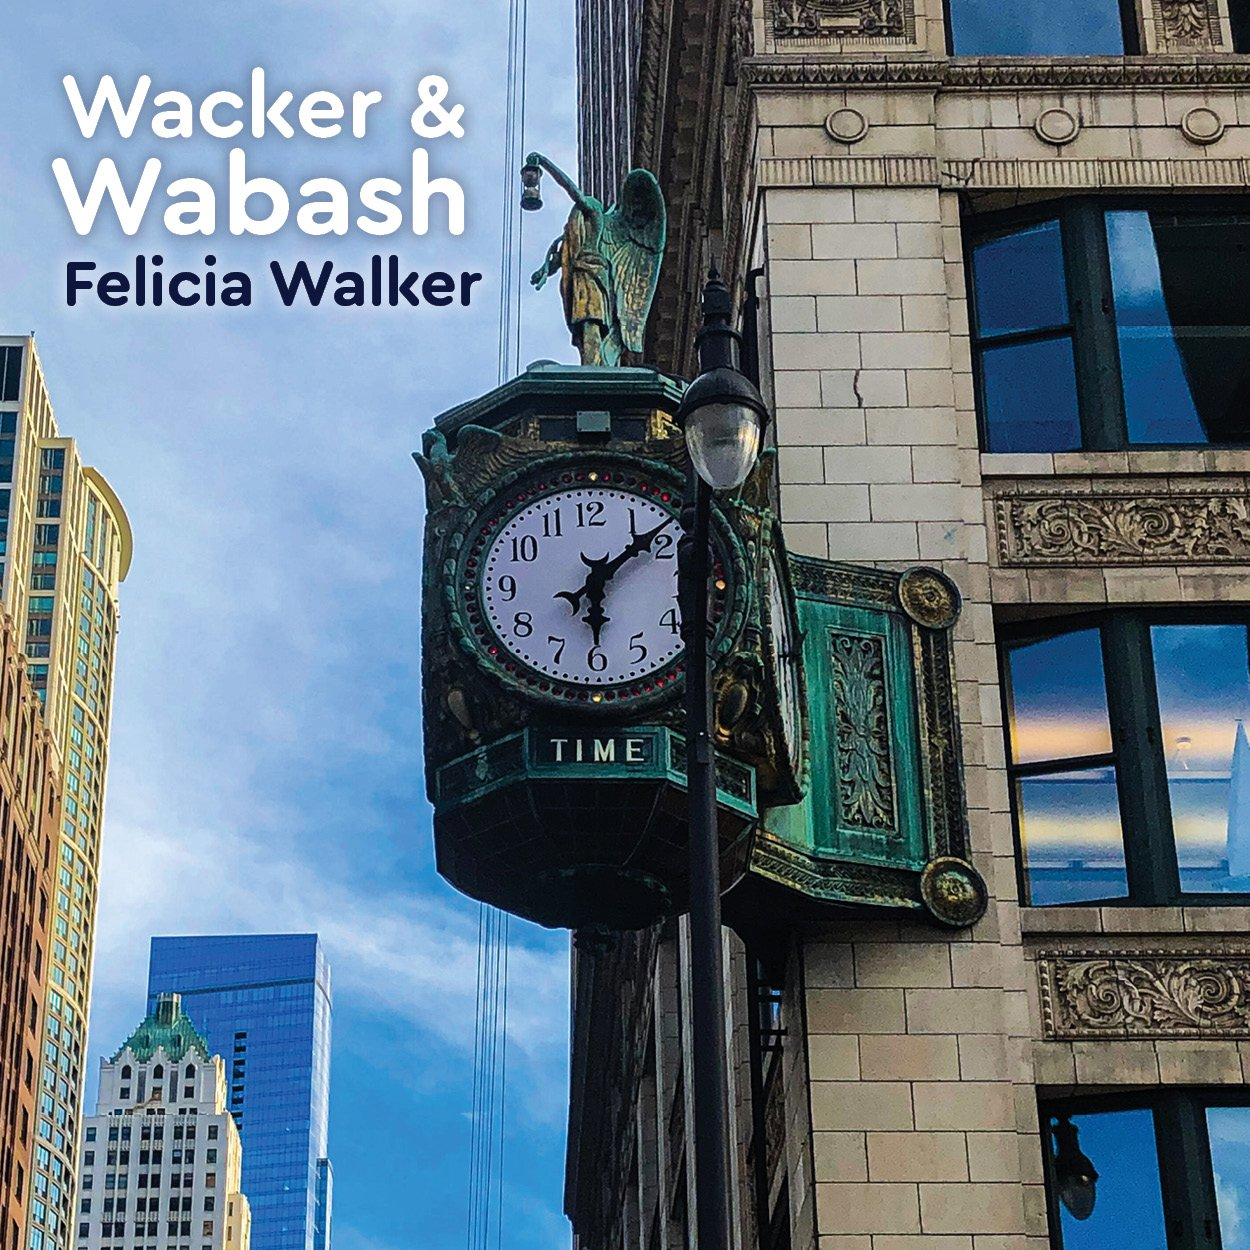 Felicia Walker at Wabash & Wacker